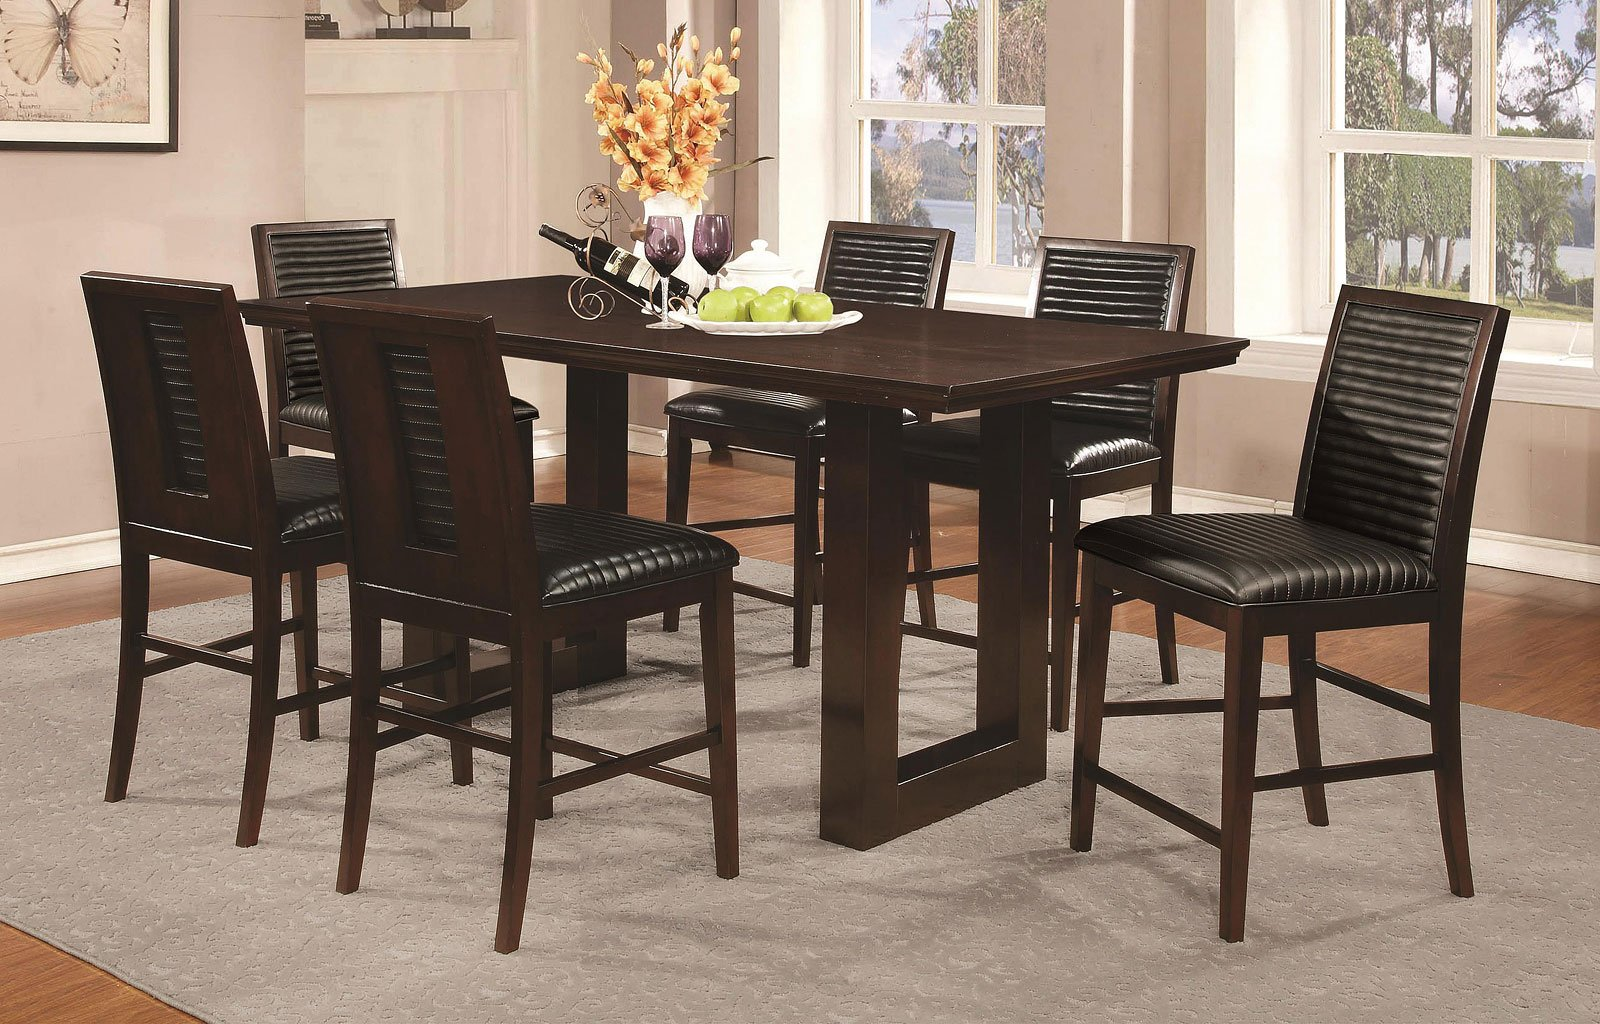 Chester Counter Height Dining Room Set Casual Dining Sets Dining Room And Kitchen Furniture